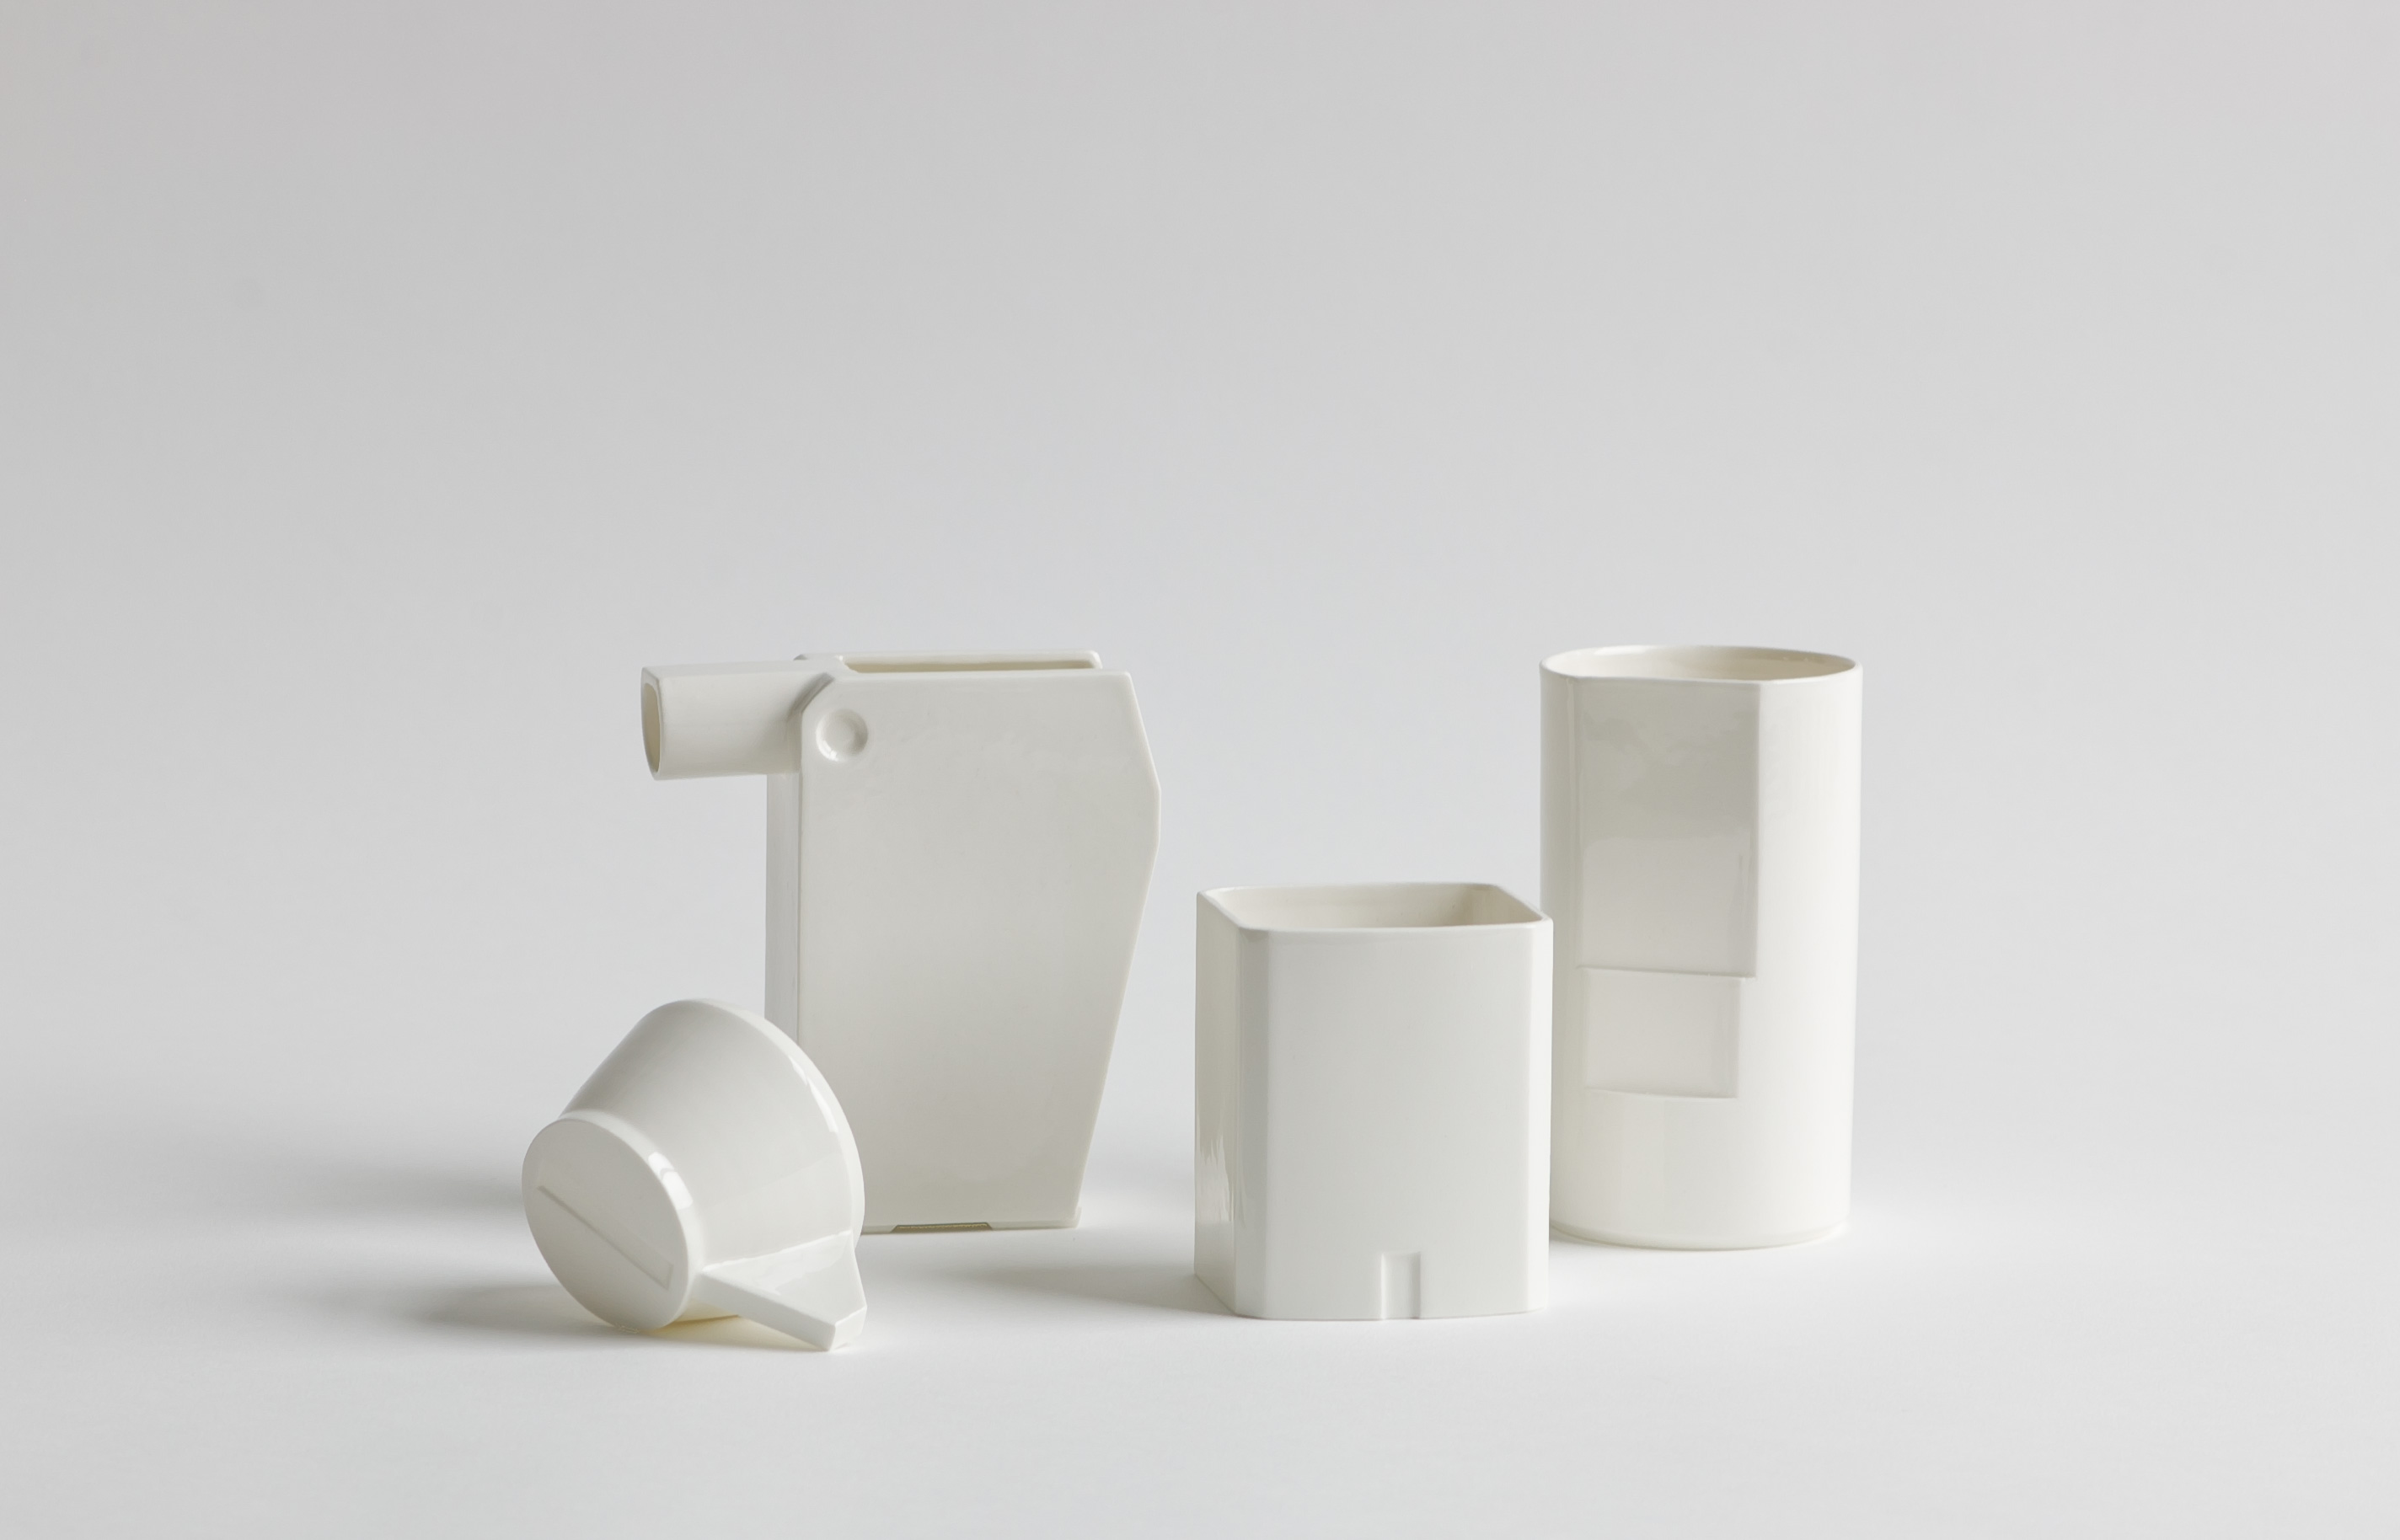 a2_minalemaeda_manufactured_ceramics_mdby_mdba_cadcam_tableware_01_transparent glaze